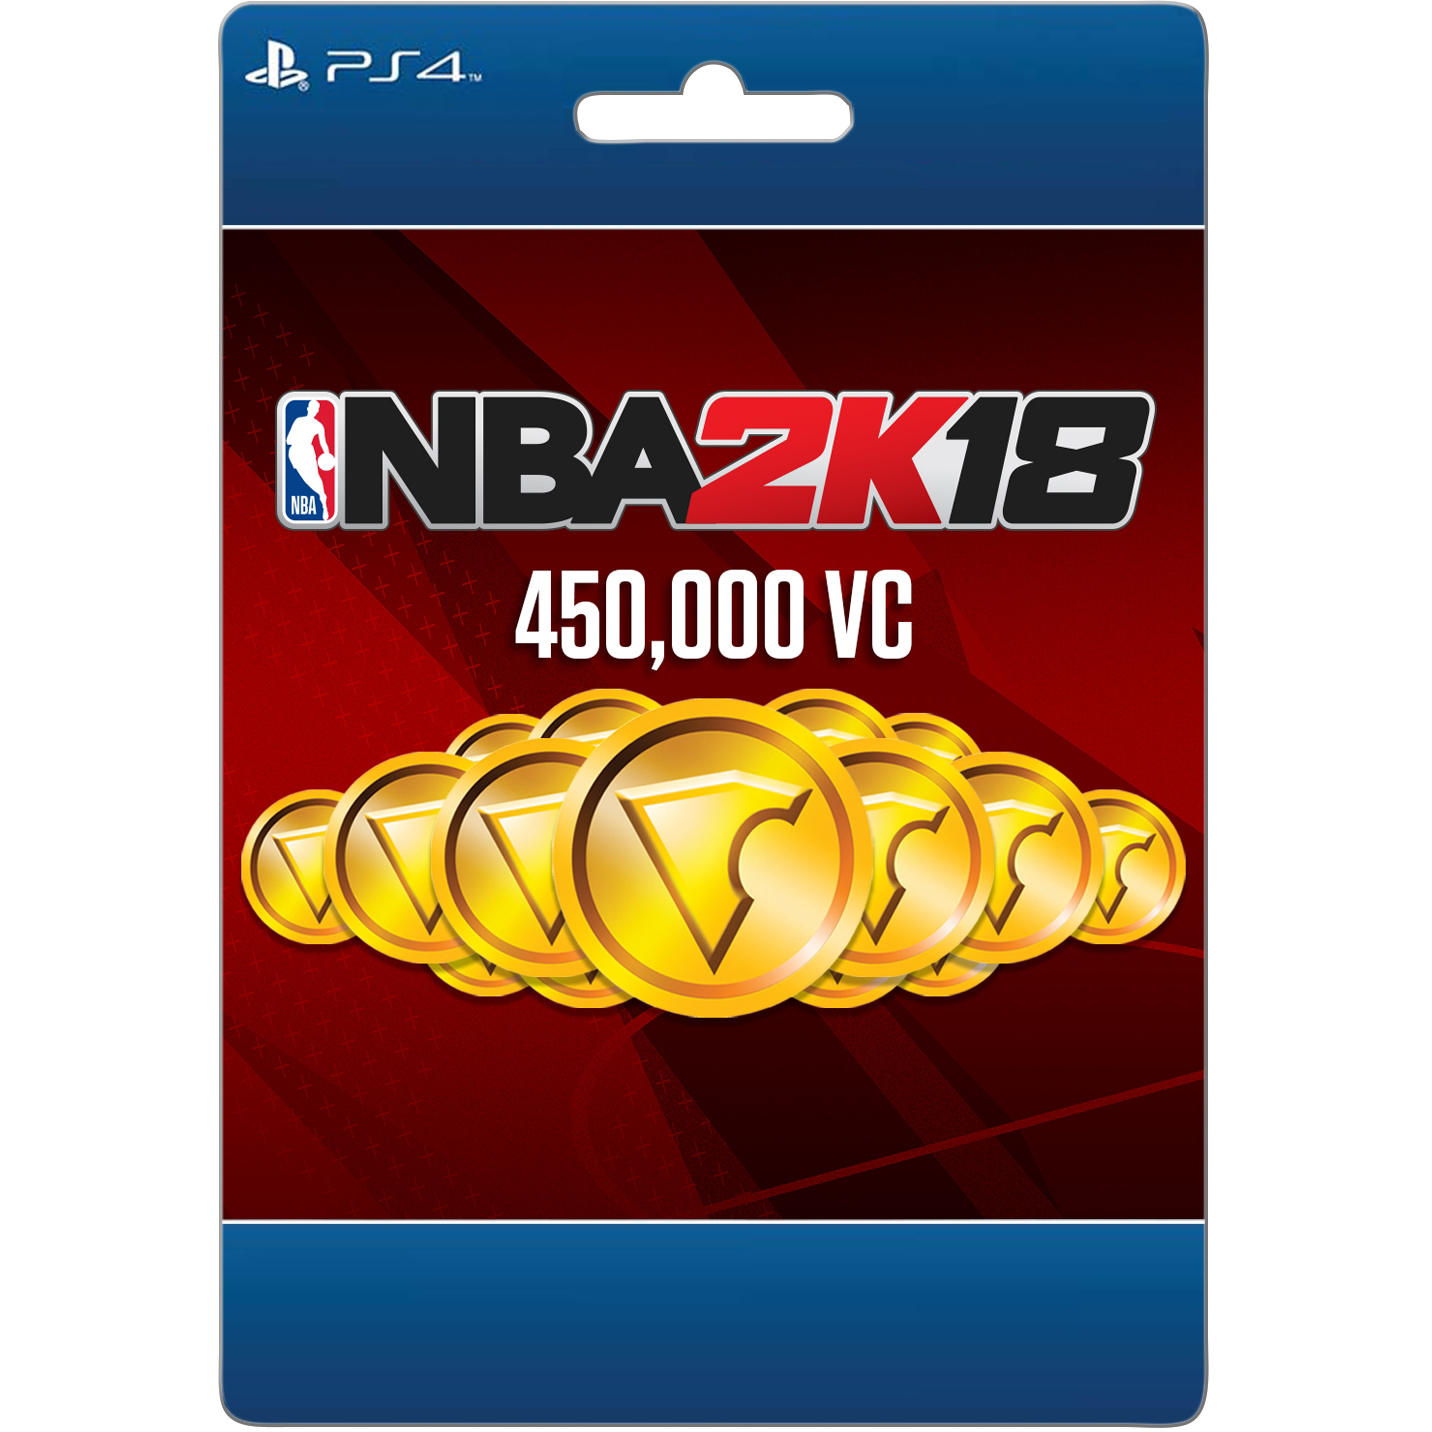 Sony NBA 2K18 450,000 VC (email delivery)